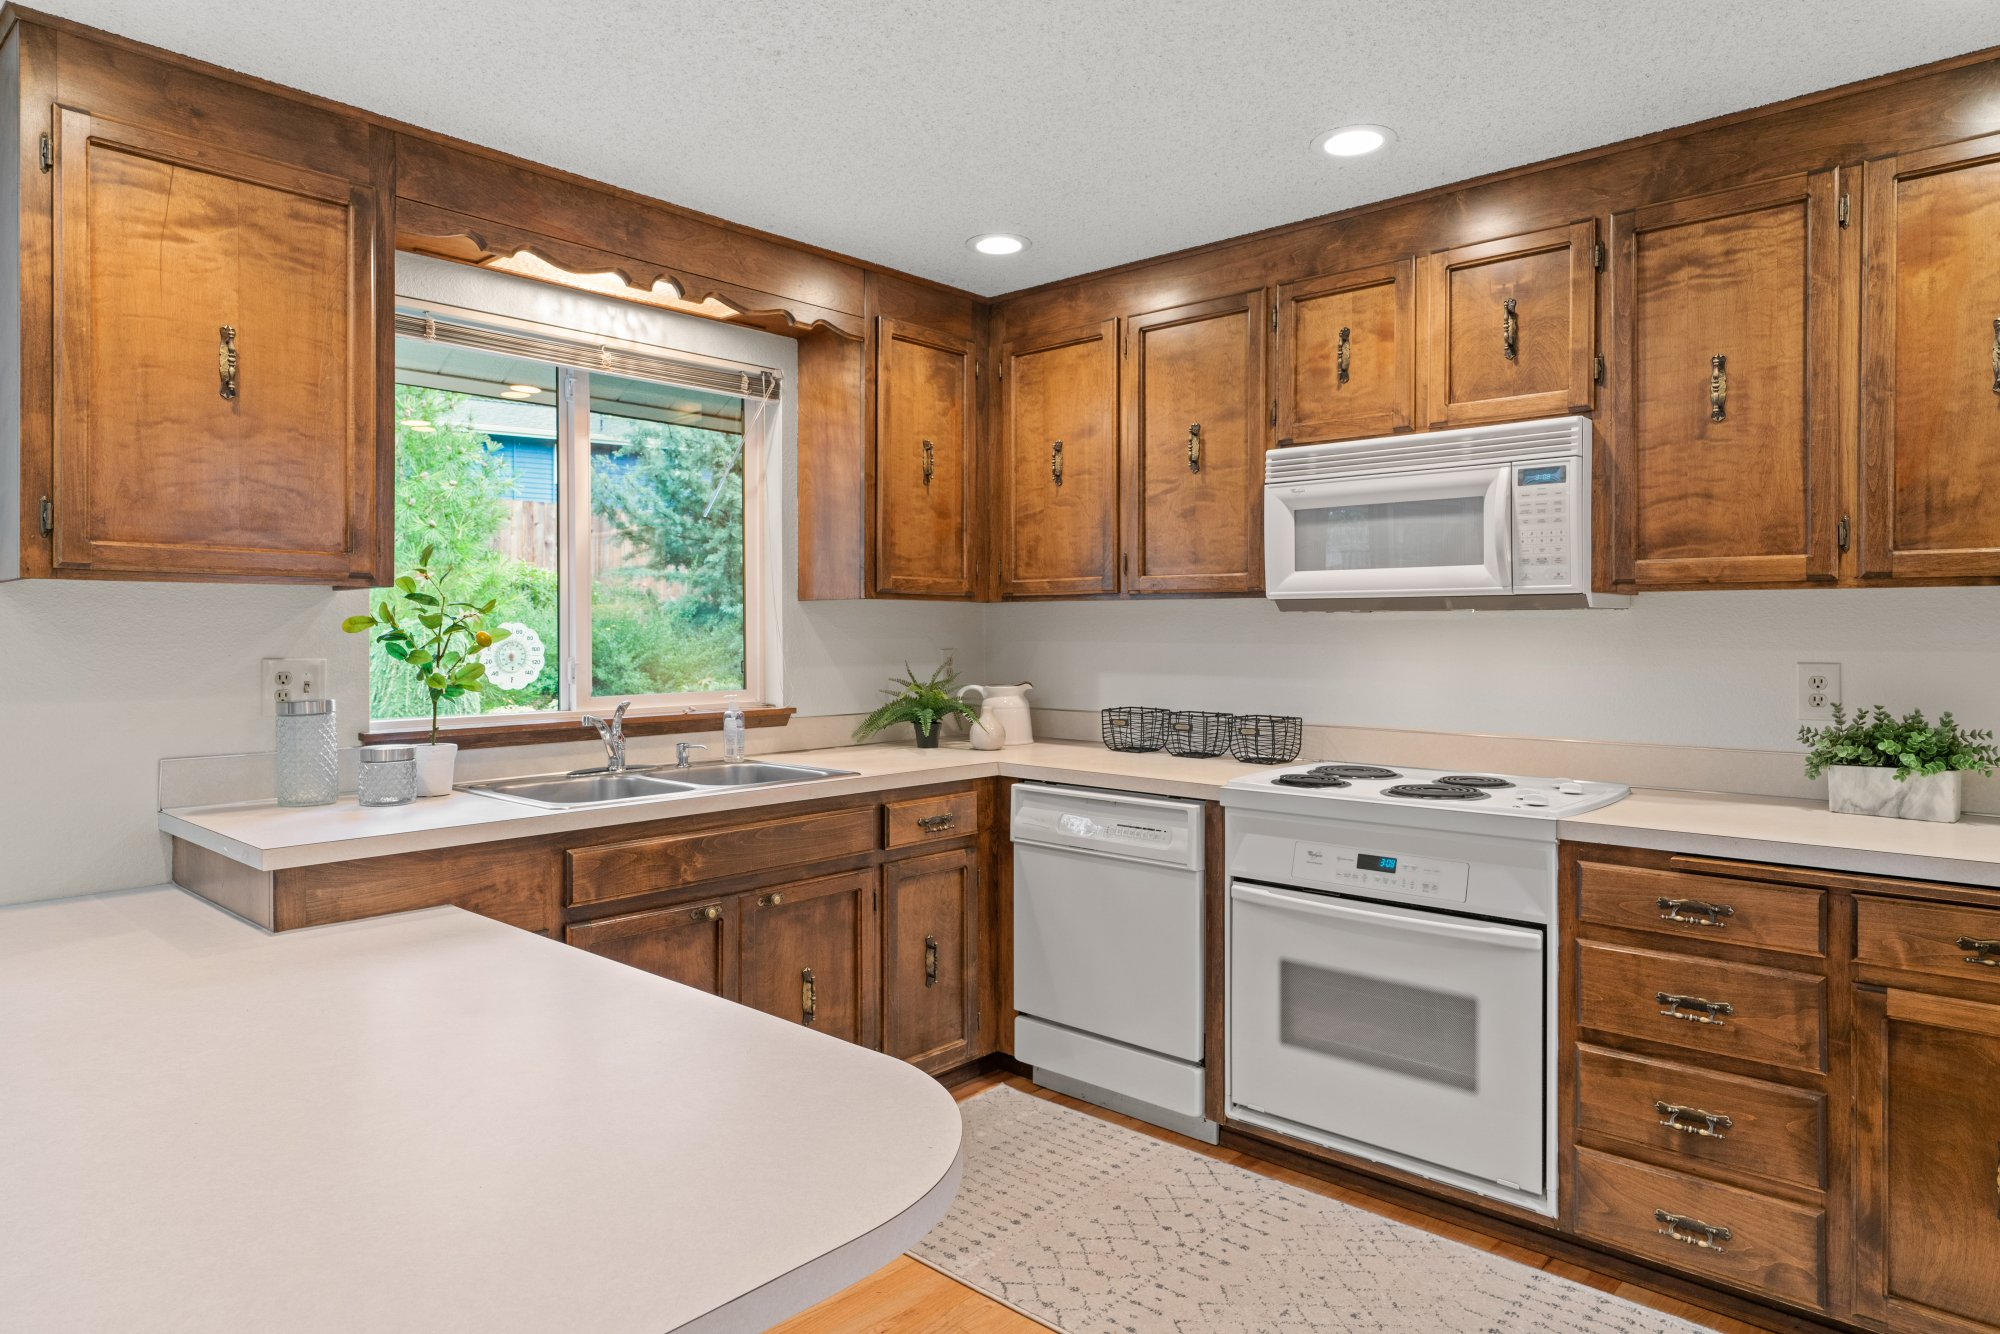 Terry Vehrs_010-22829108thAvenueWest-Edmonds-WA-98020-SMALL